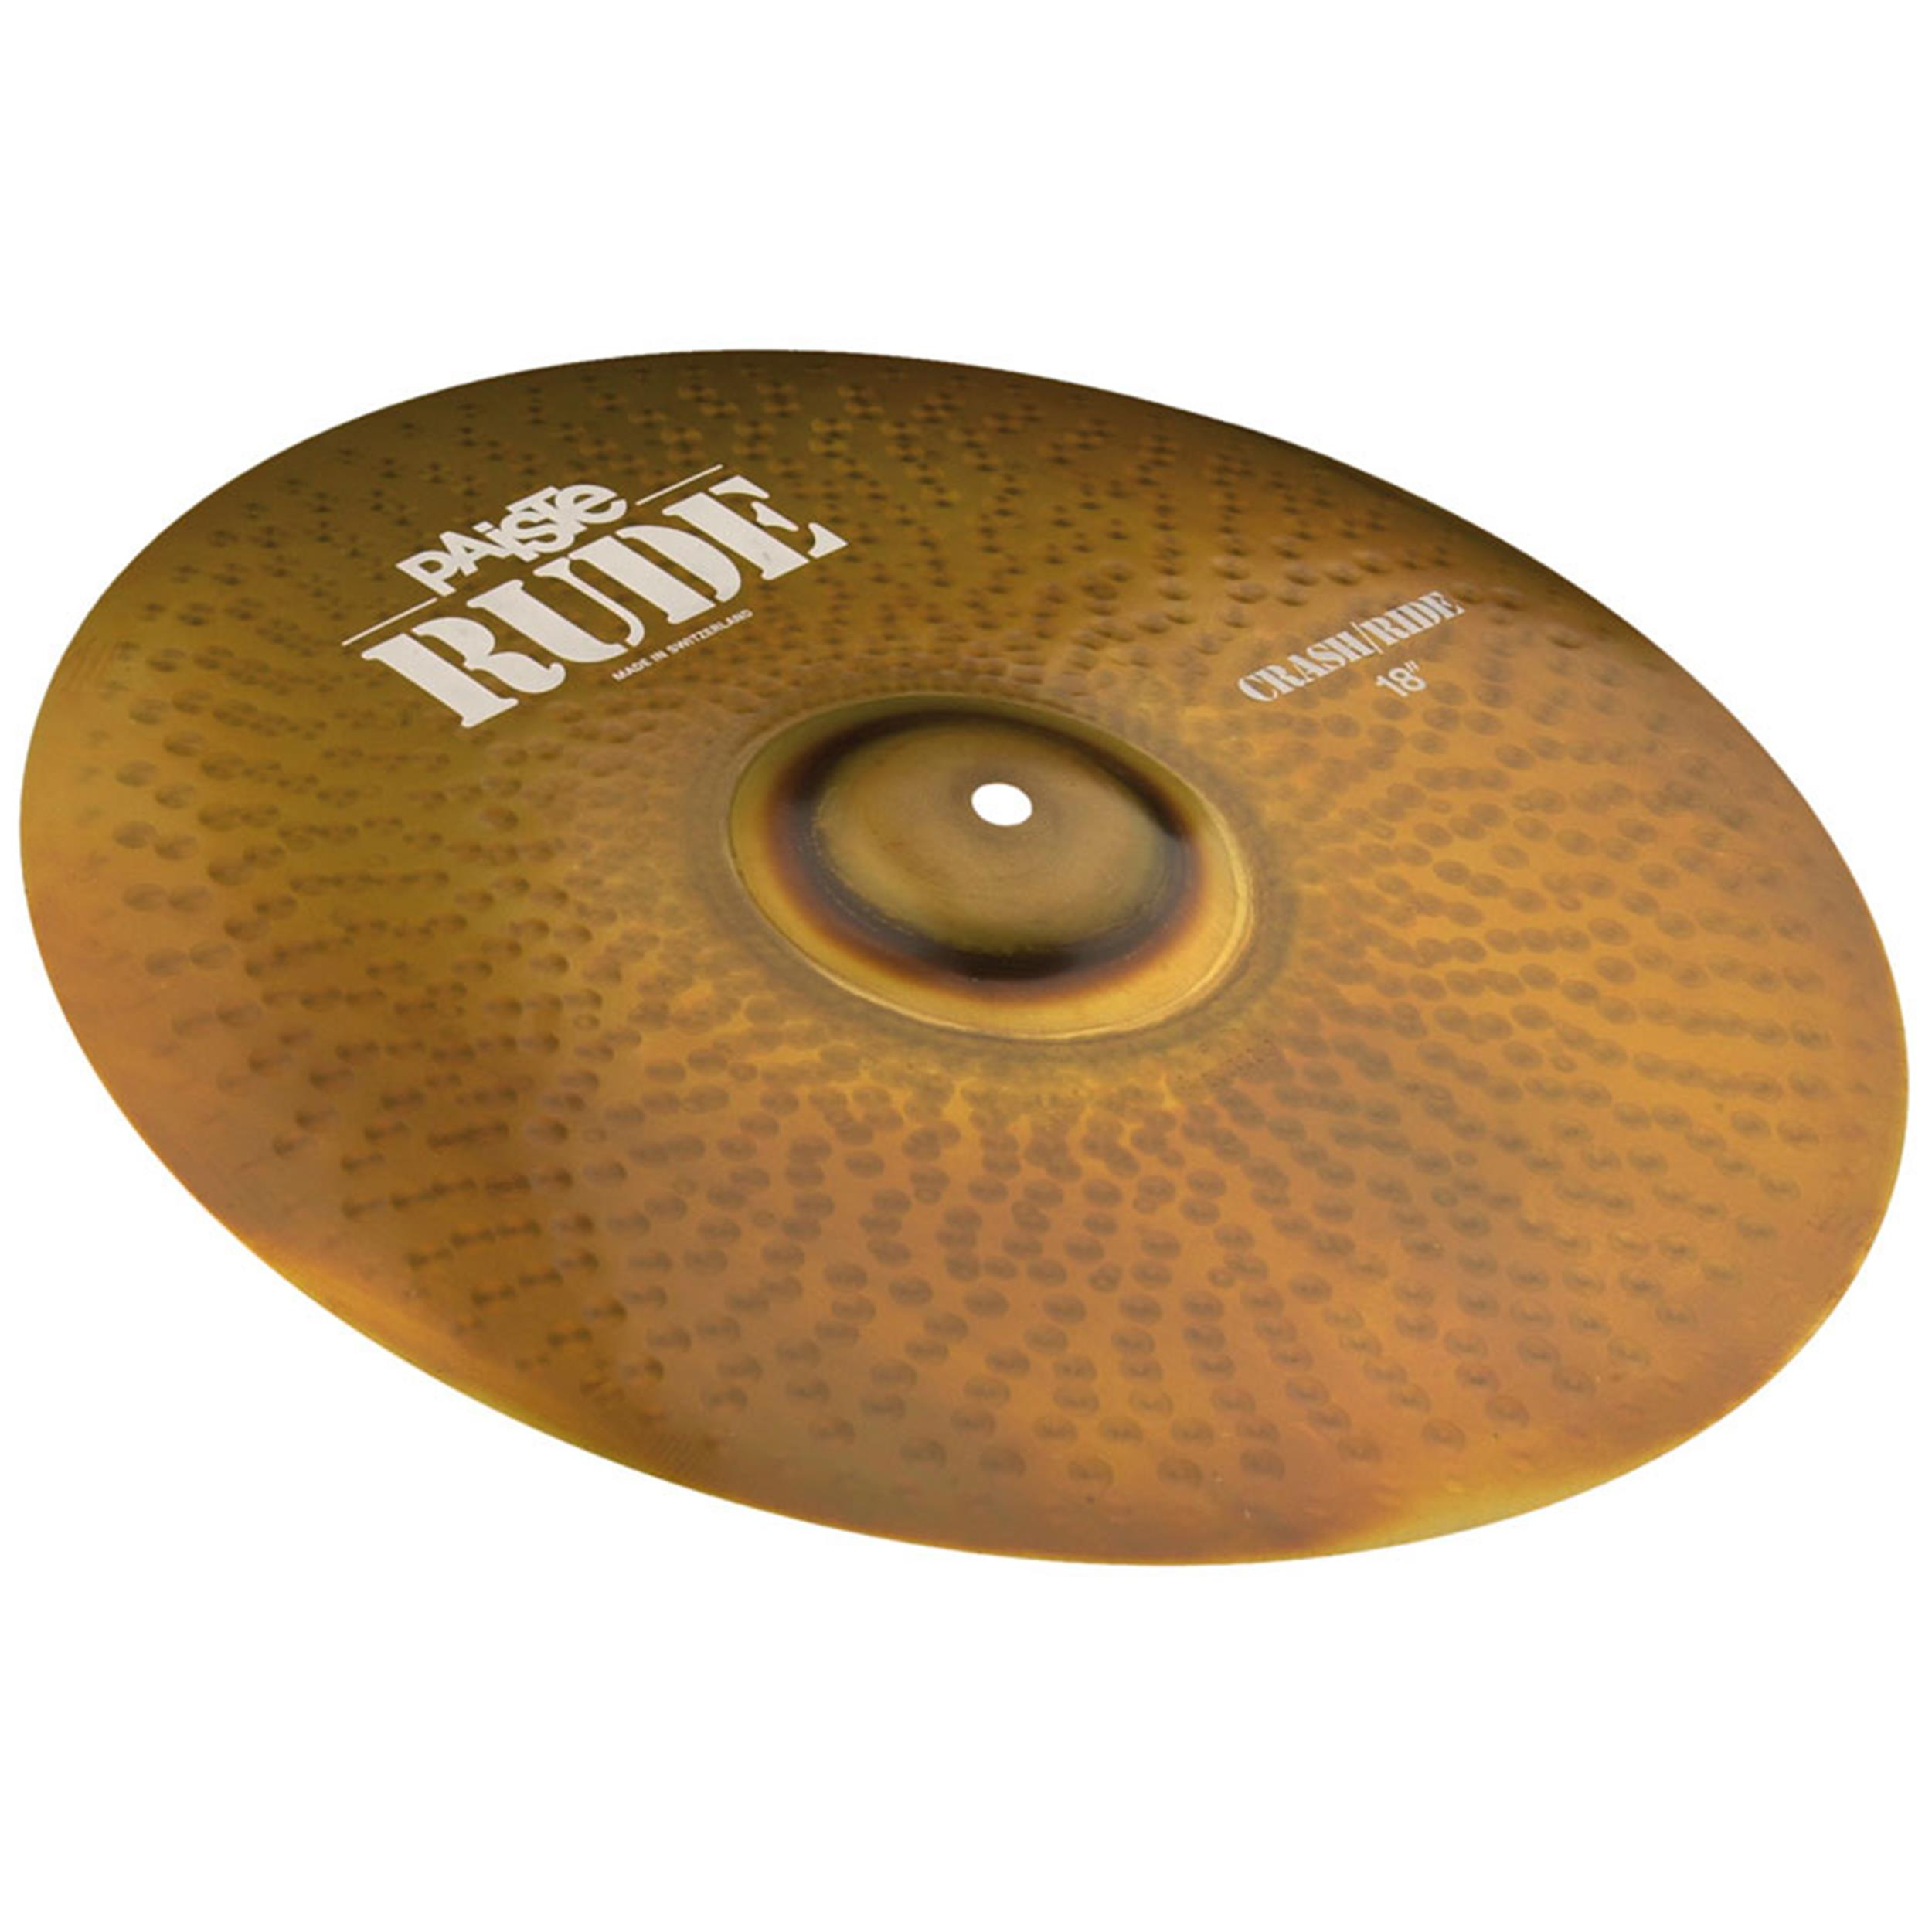 PAISTE RCCRC18 - RUDE CLASSIC CRASH / RIDE 18